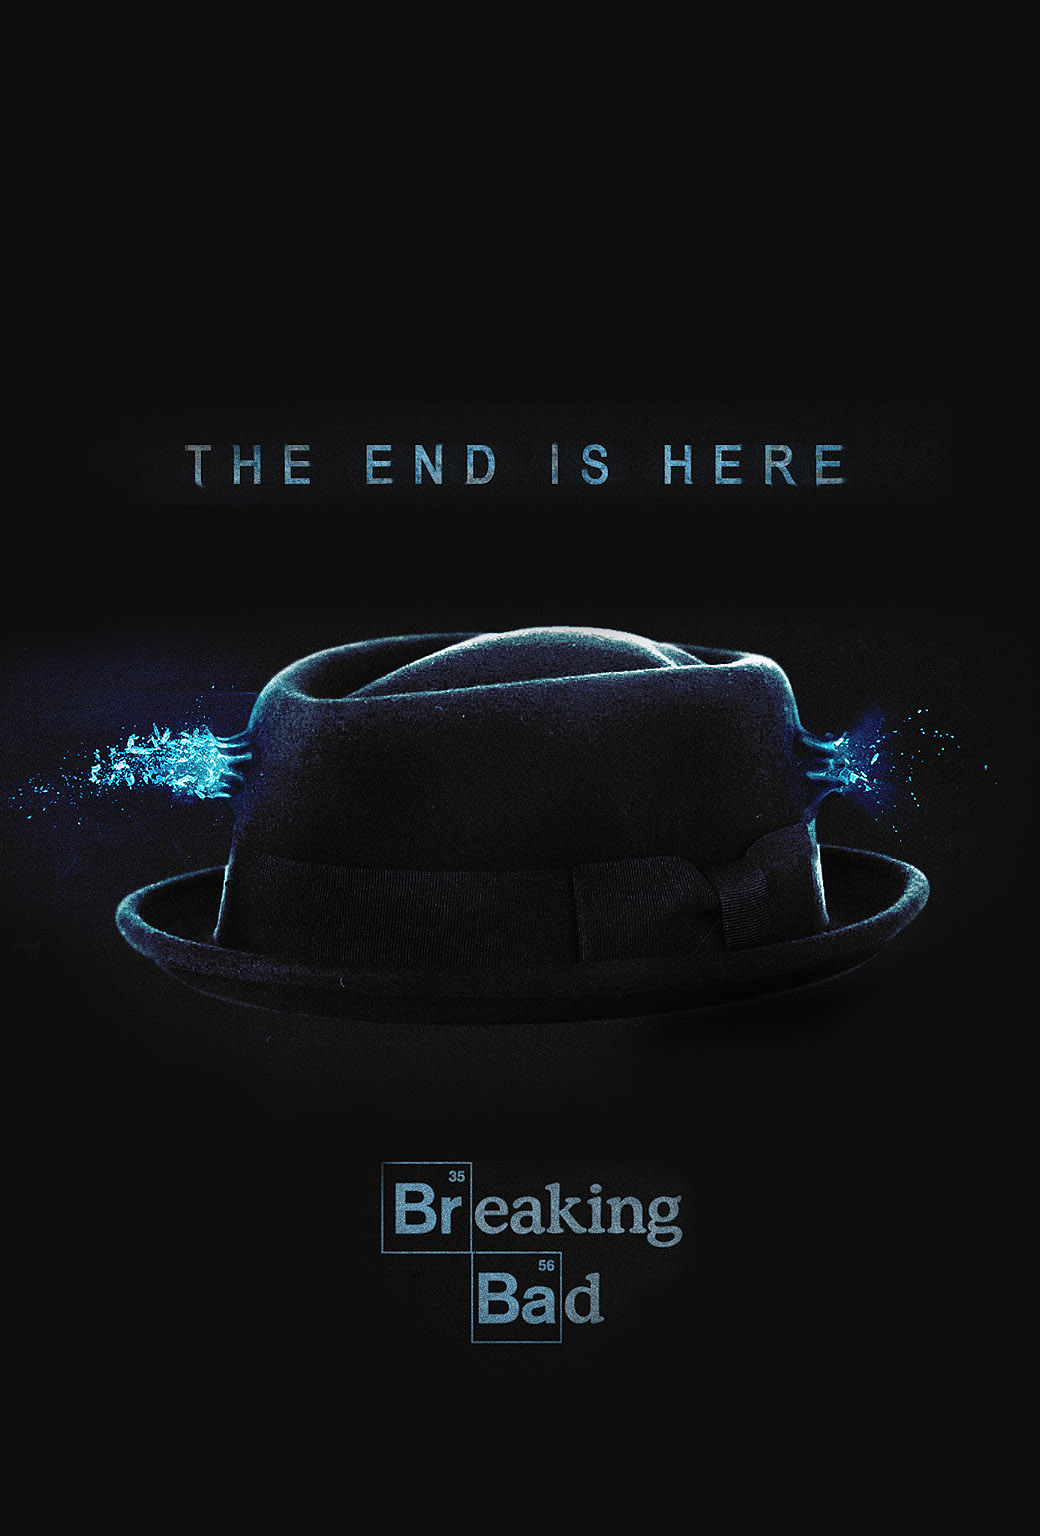 Breaking Bad wallpapers for iPhone and iPad 1040x1536